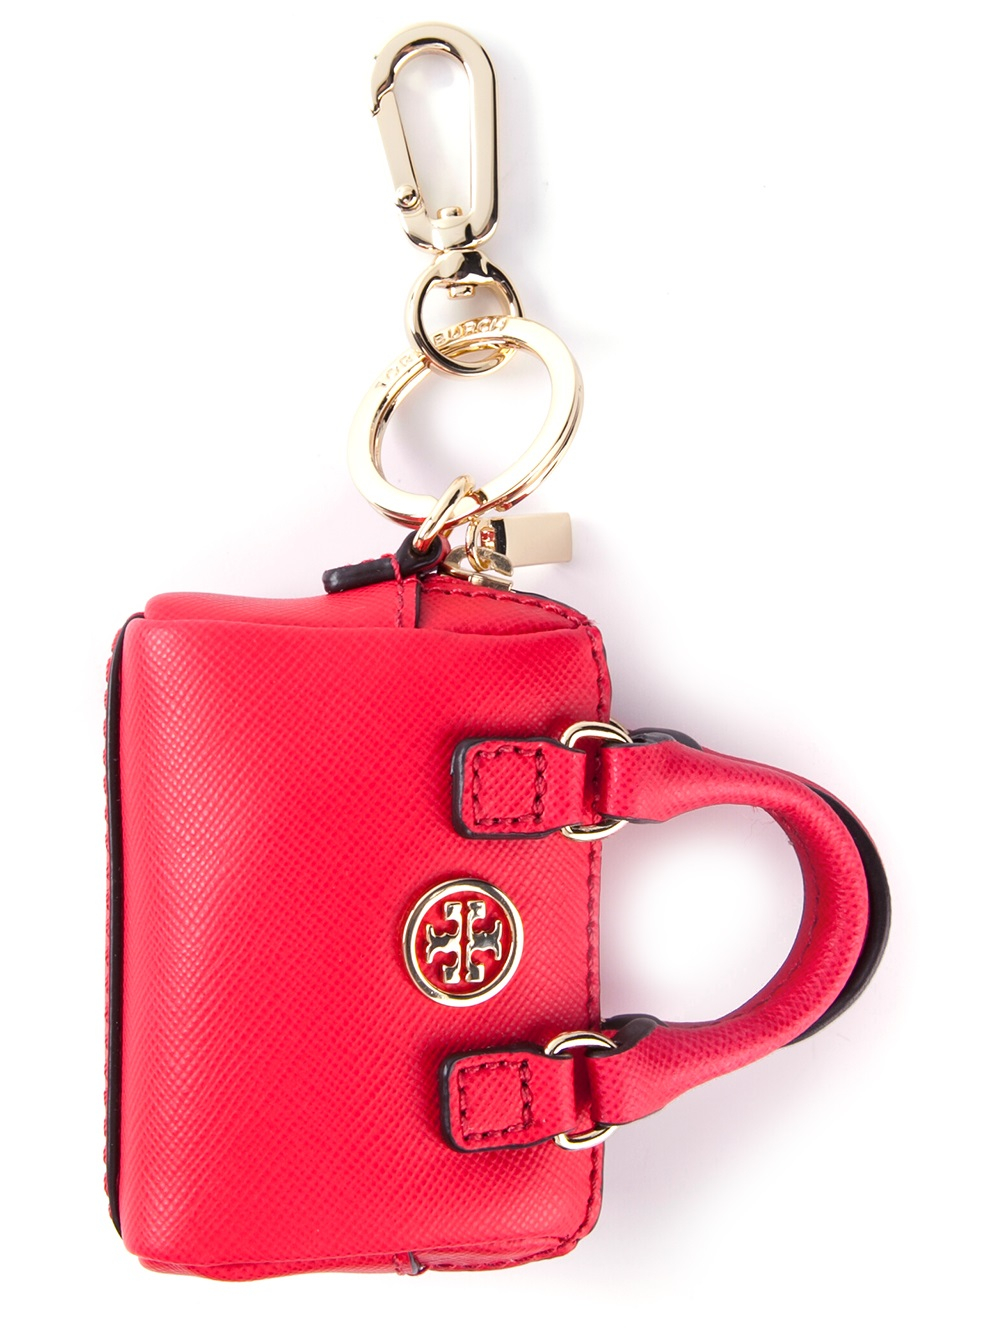 Lyst Tory Burch Handbag Key Chain In Red